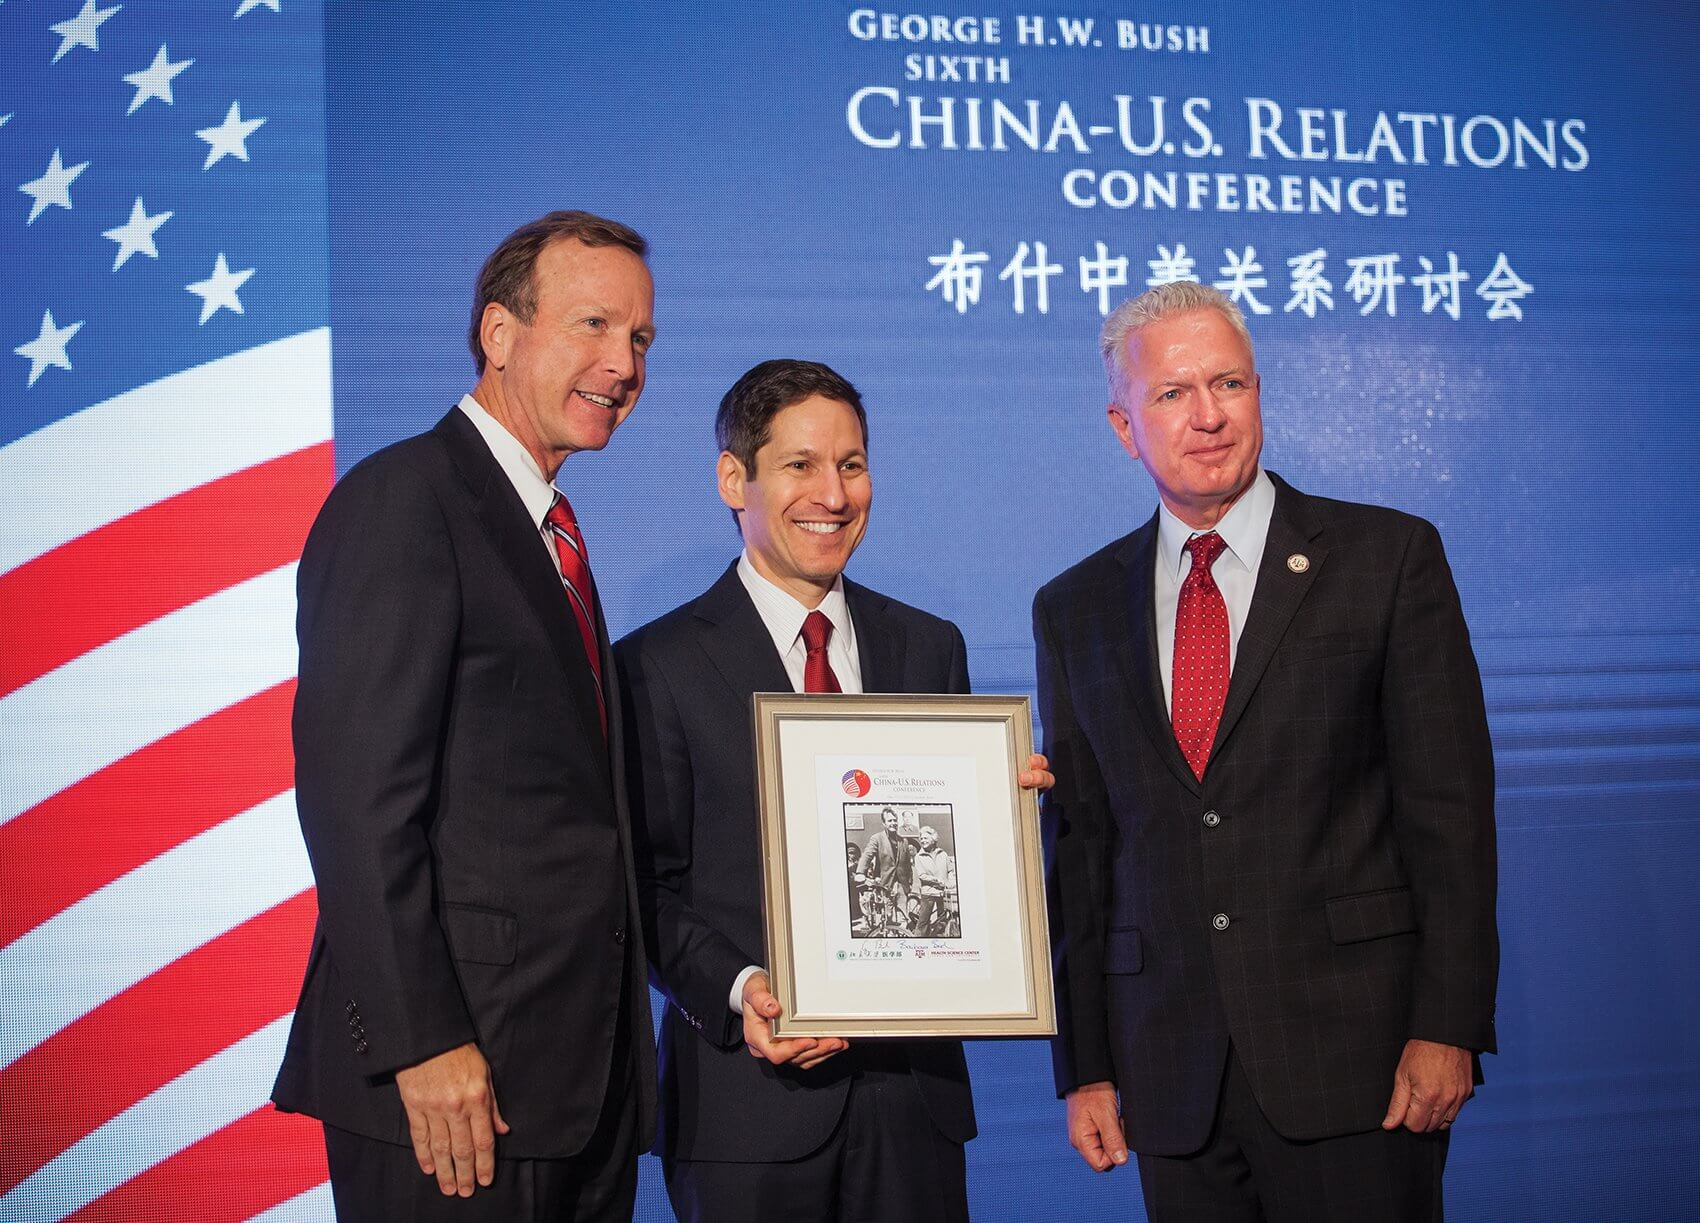 From left to right, conference co-chair Neil Bush, keynote speaker Thomas Frieden, M.D., director of the U.S. Centers for Disease Control and Prevention, and Brett Giroir, M.D., chief executive officer of Texas A&M Health Science Center.